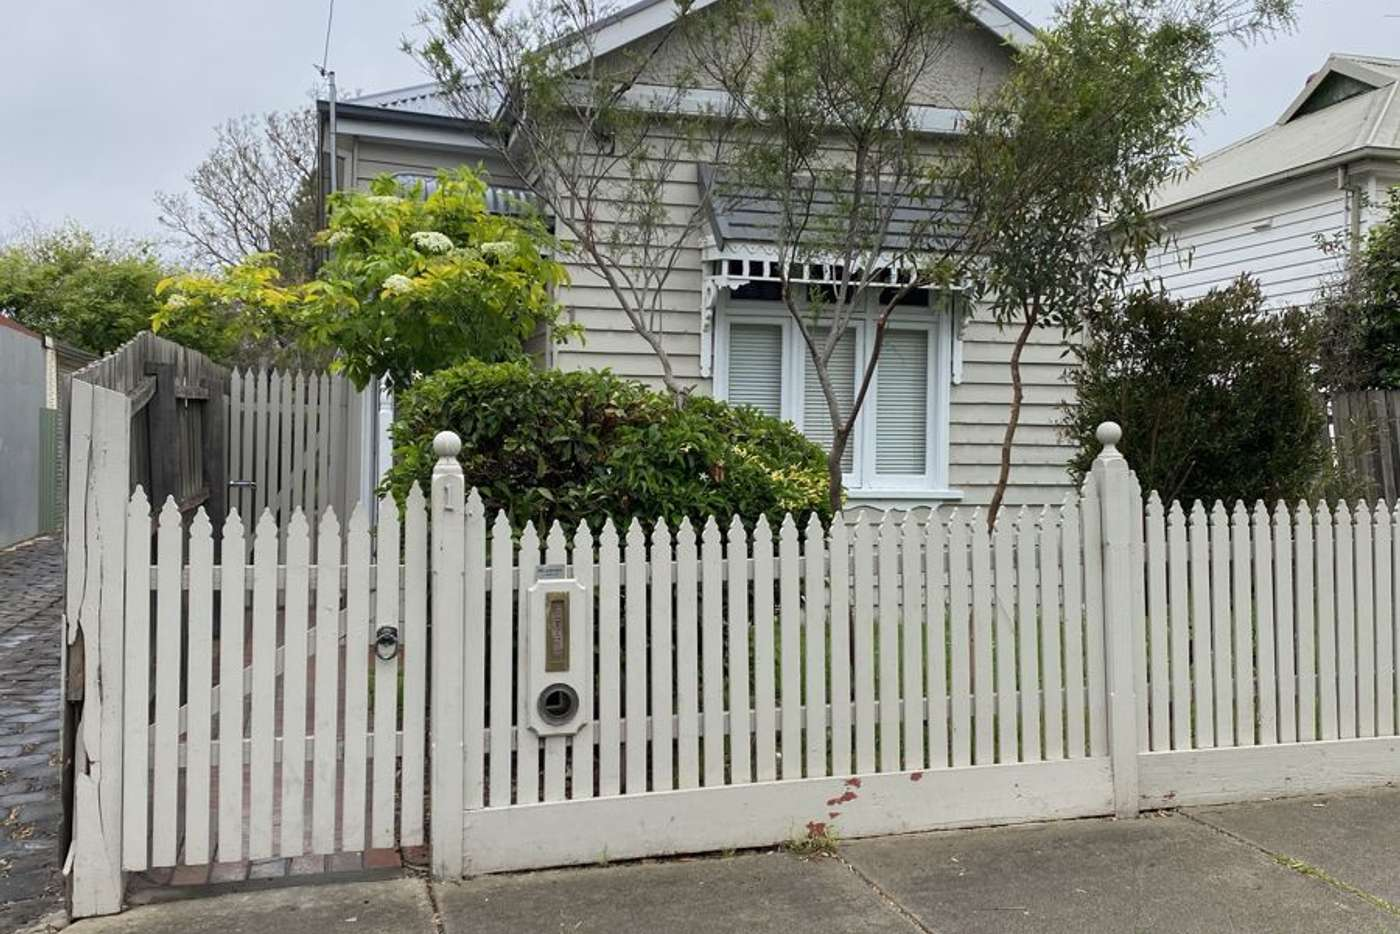 Main view of Homely house listing, 1 Fowler Street, Coburg VIC 3058